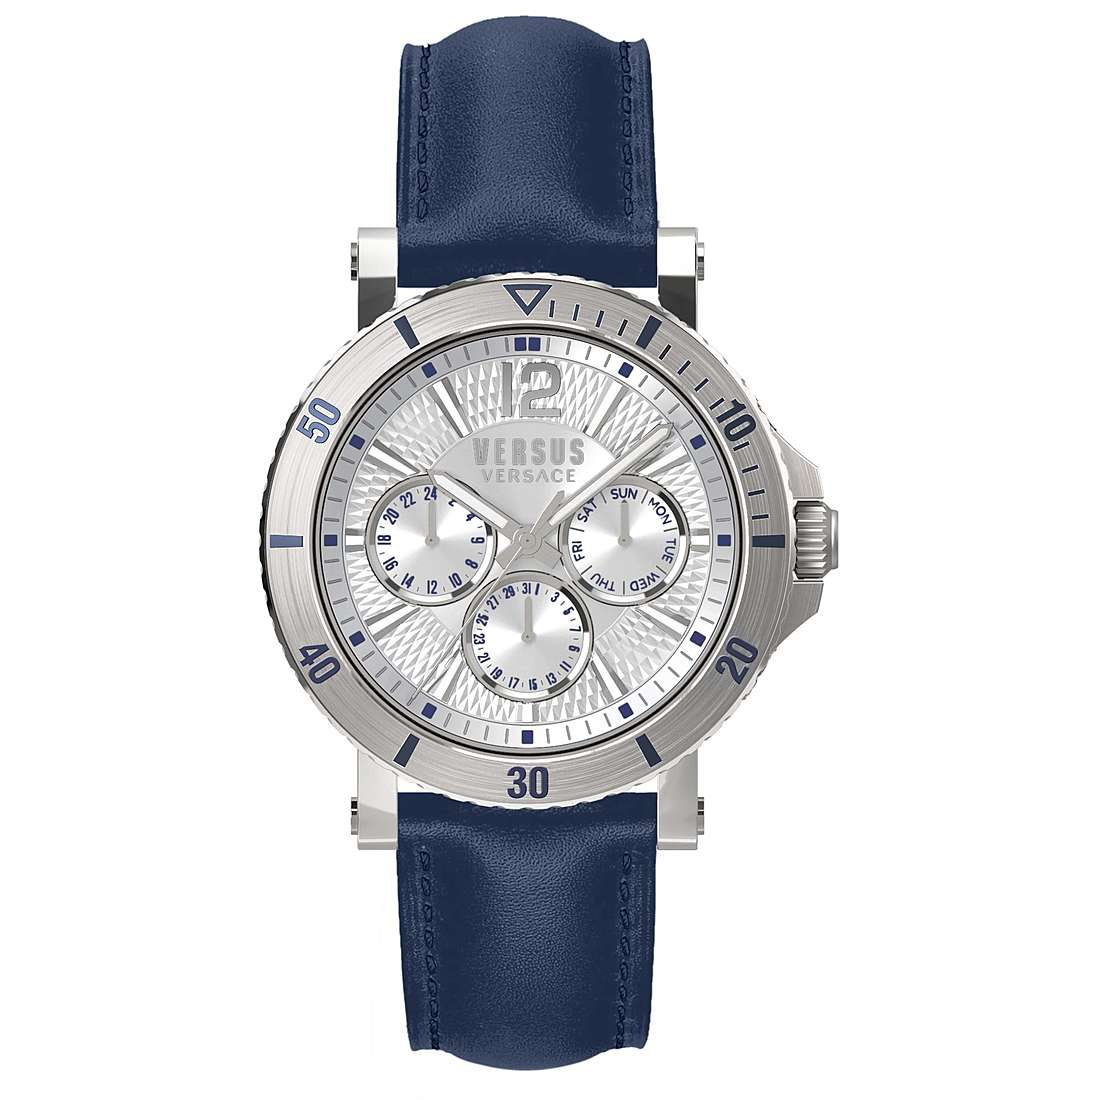 Versus Versace Steenberg Day & Date White - Watches & Crystals